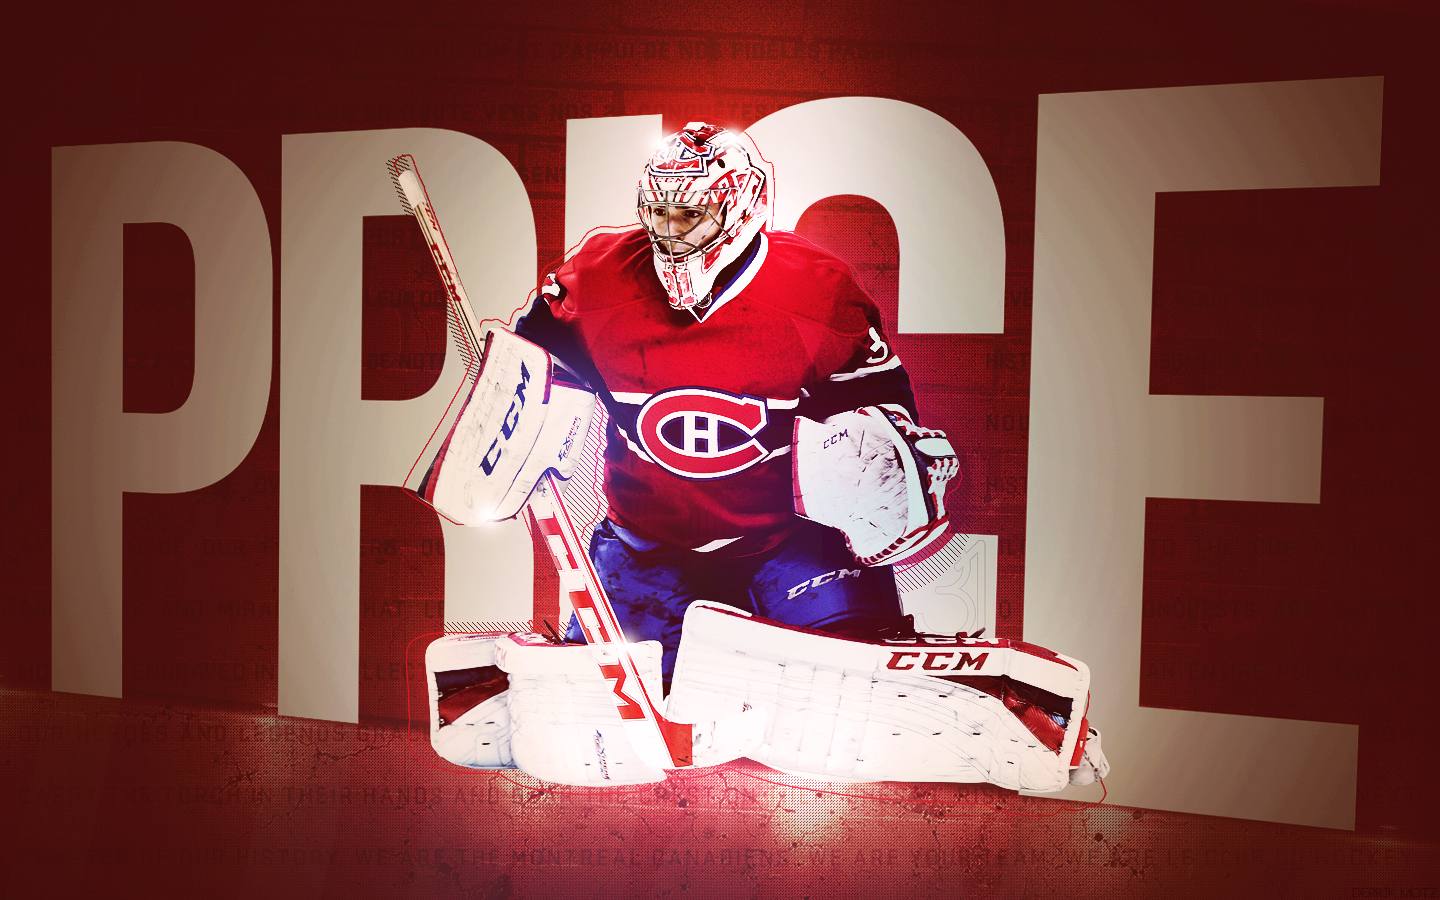 Carey price wallpapers montreal habs montreal hockey 9 html code - Montreal Canadiens Wallpaper By Balkanicon On Deviantart 0 Html Code Last Edited By Kipps 03 17 2015 At 08 20 Pm